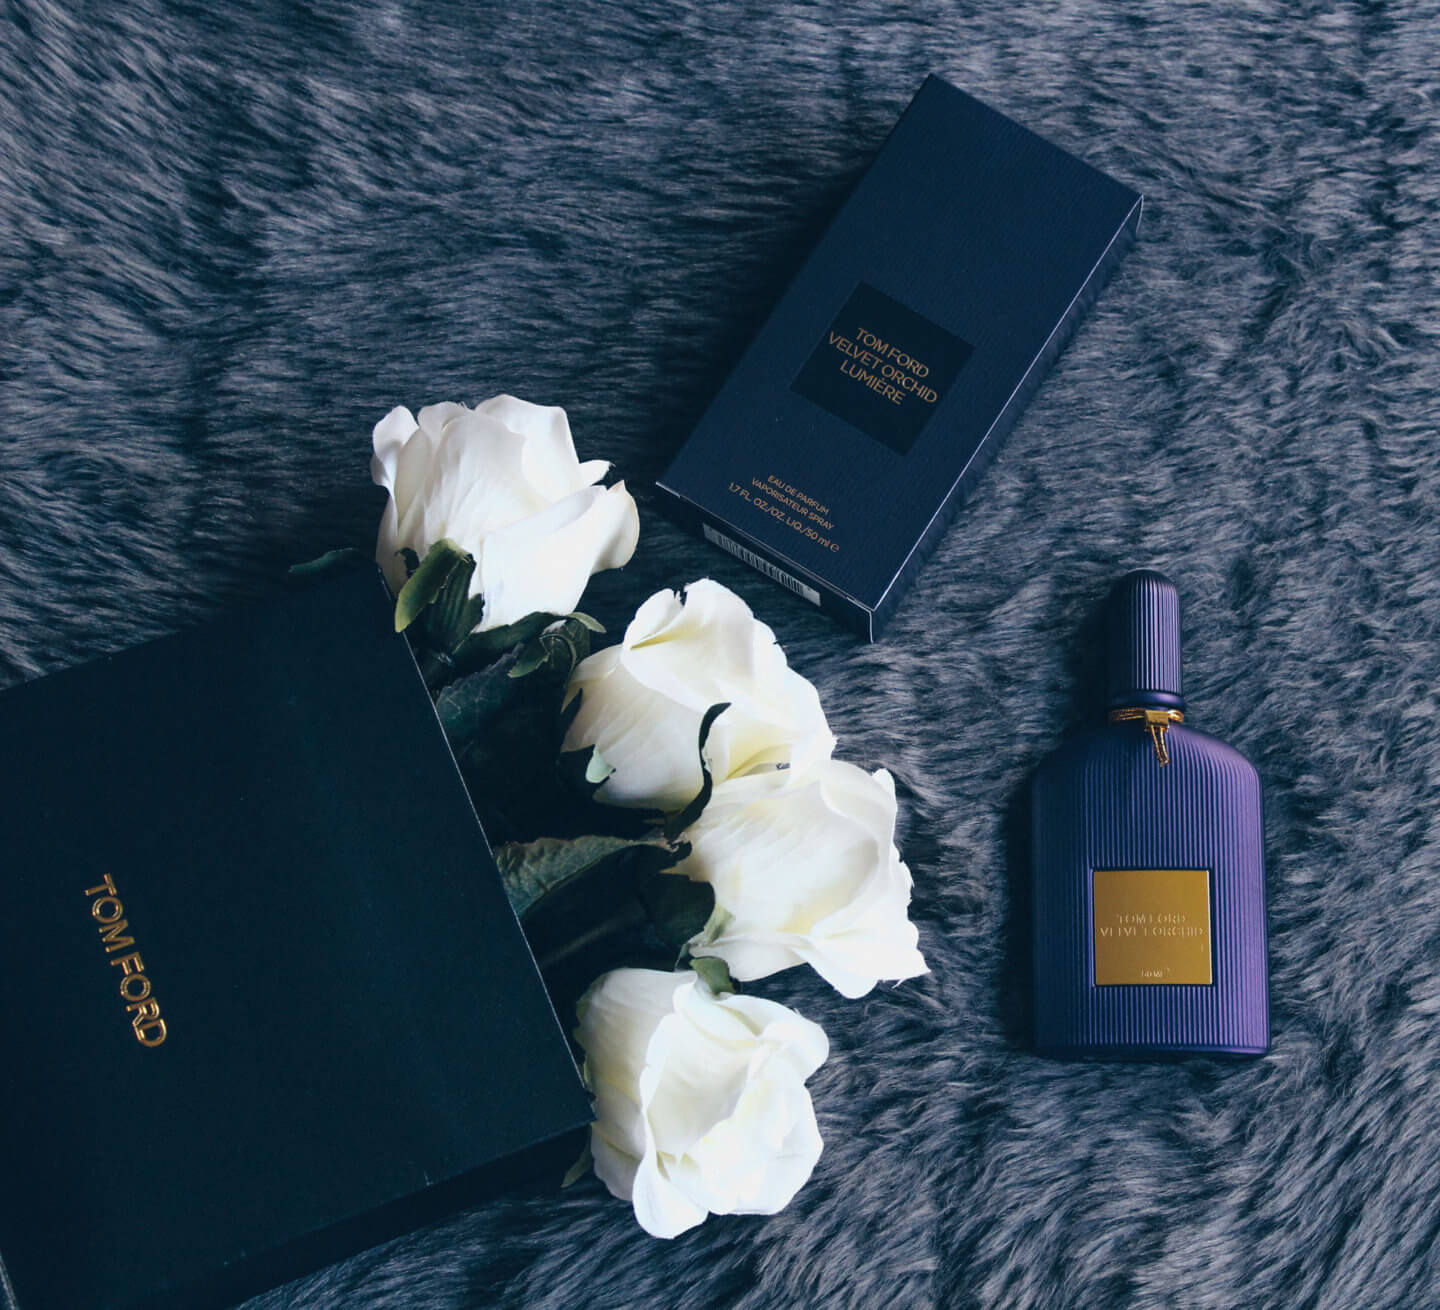 John Lewis Gift Guide including Tom Ford Velvet Orchid